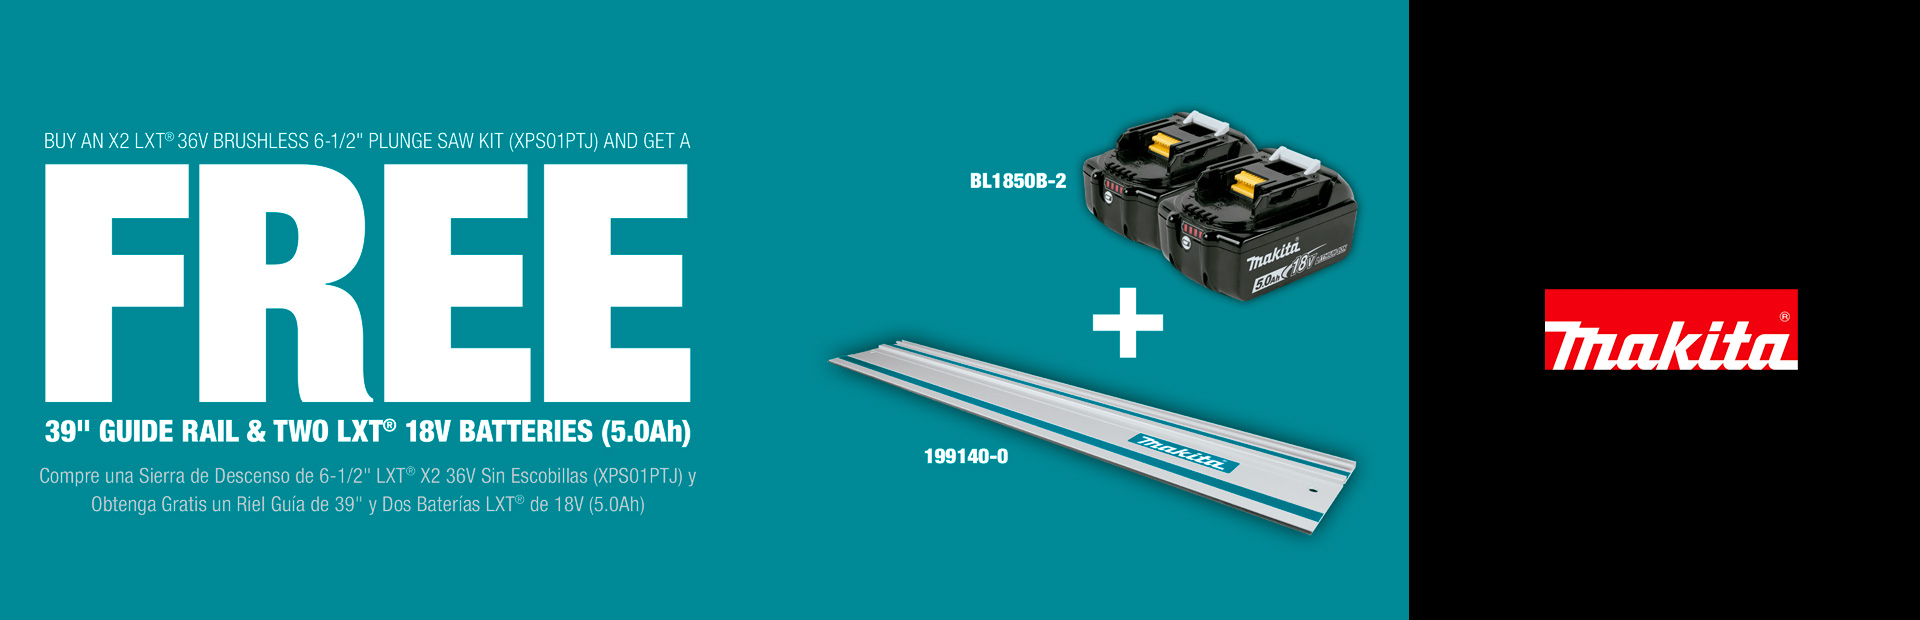 "Makita: BUY AN X2 LXT® 36V BRUSHLESS 6-1/2"" PLUNGE SAW KIT"